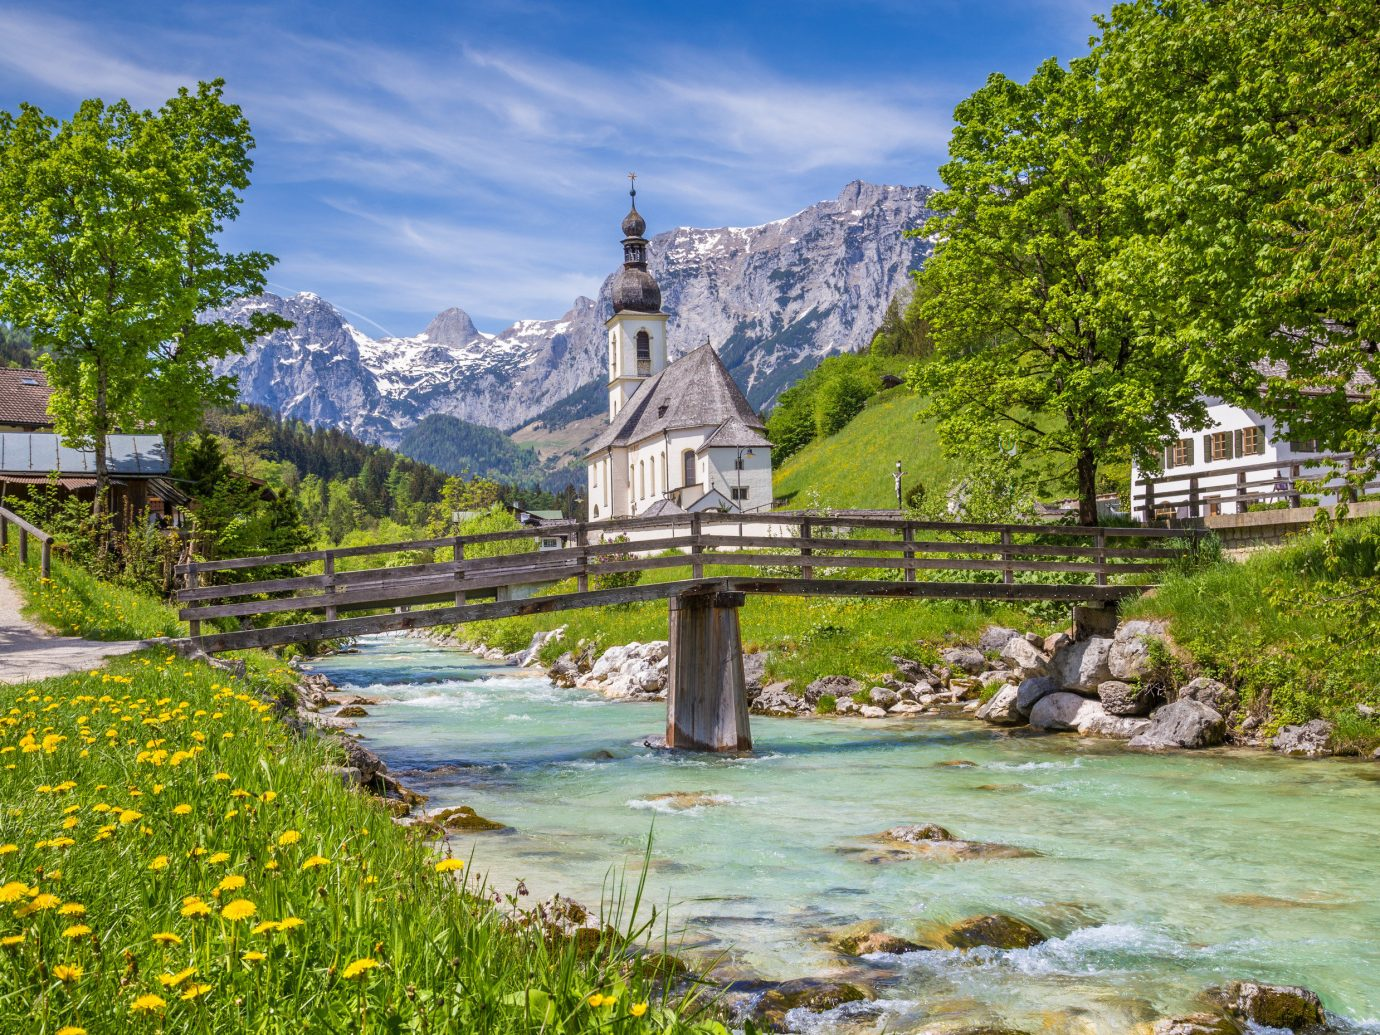 Berlin europe Germany Trip Ideas Nature water wilderness River watercourse sky bank reflection leaf tree mount scenery mountain plant fluvial landforms of streams landscape mountain range national park stream tourist attraction alps grass bridge Village